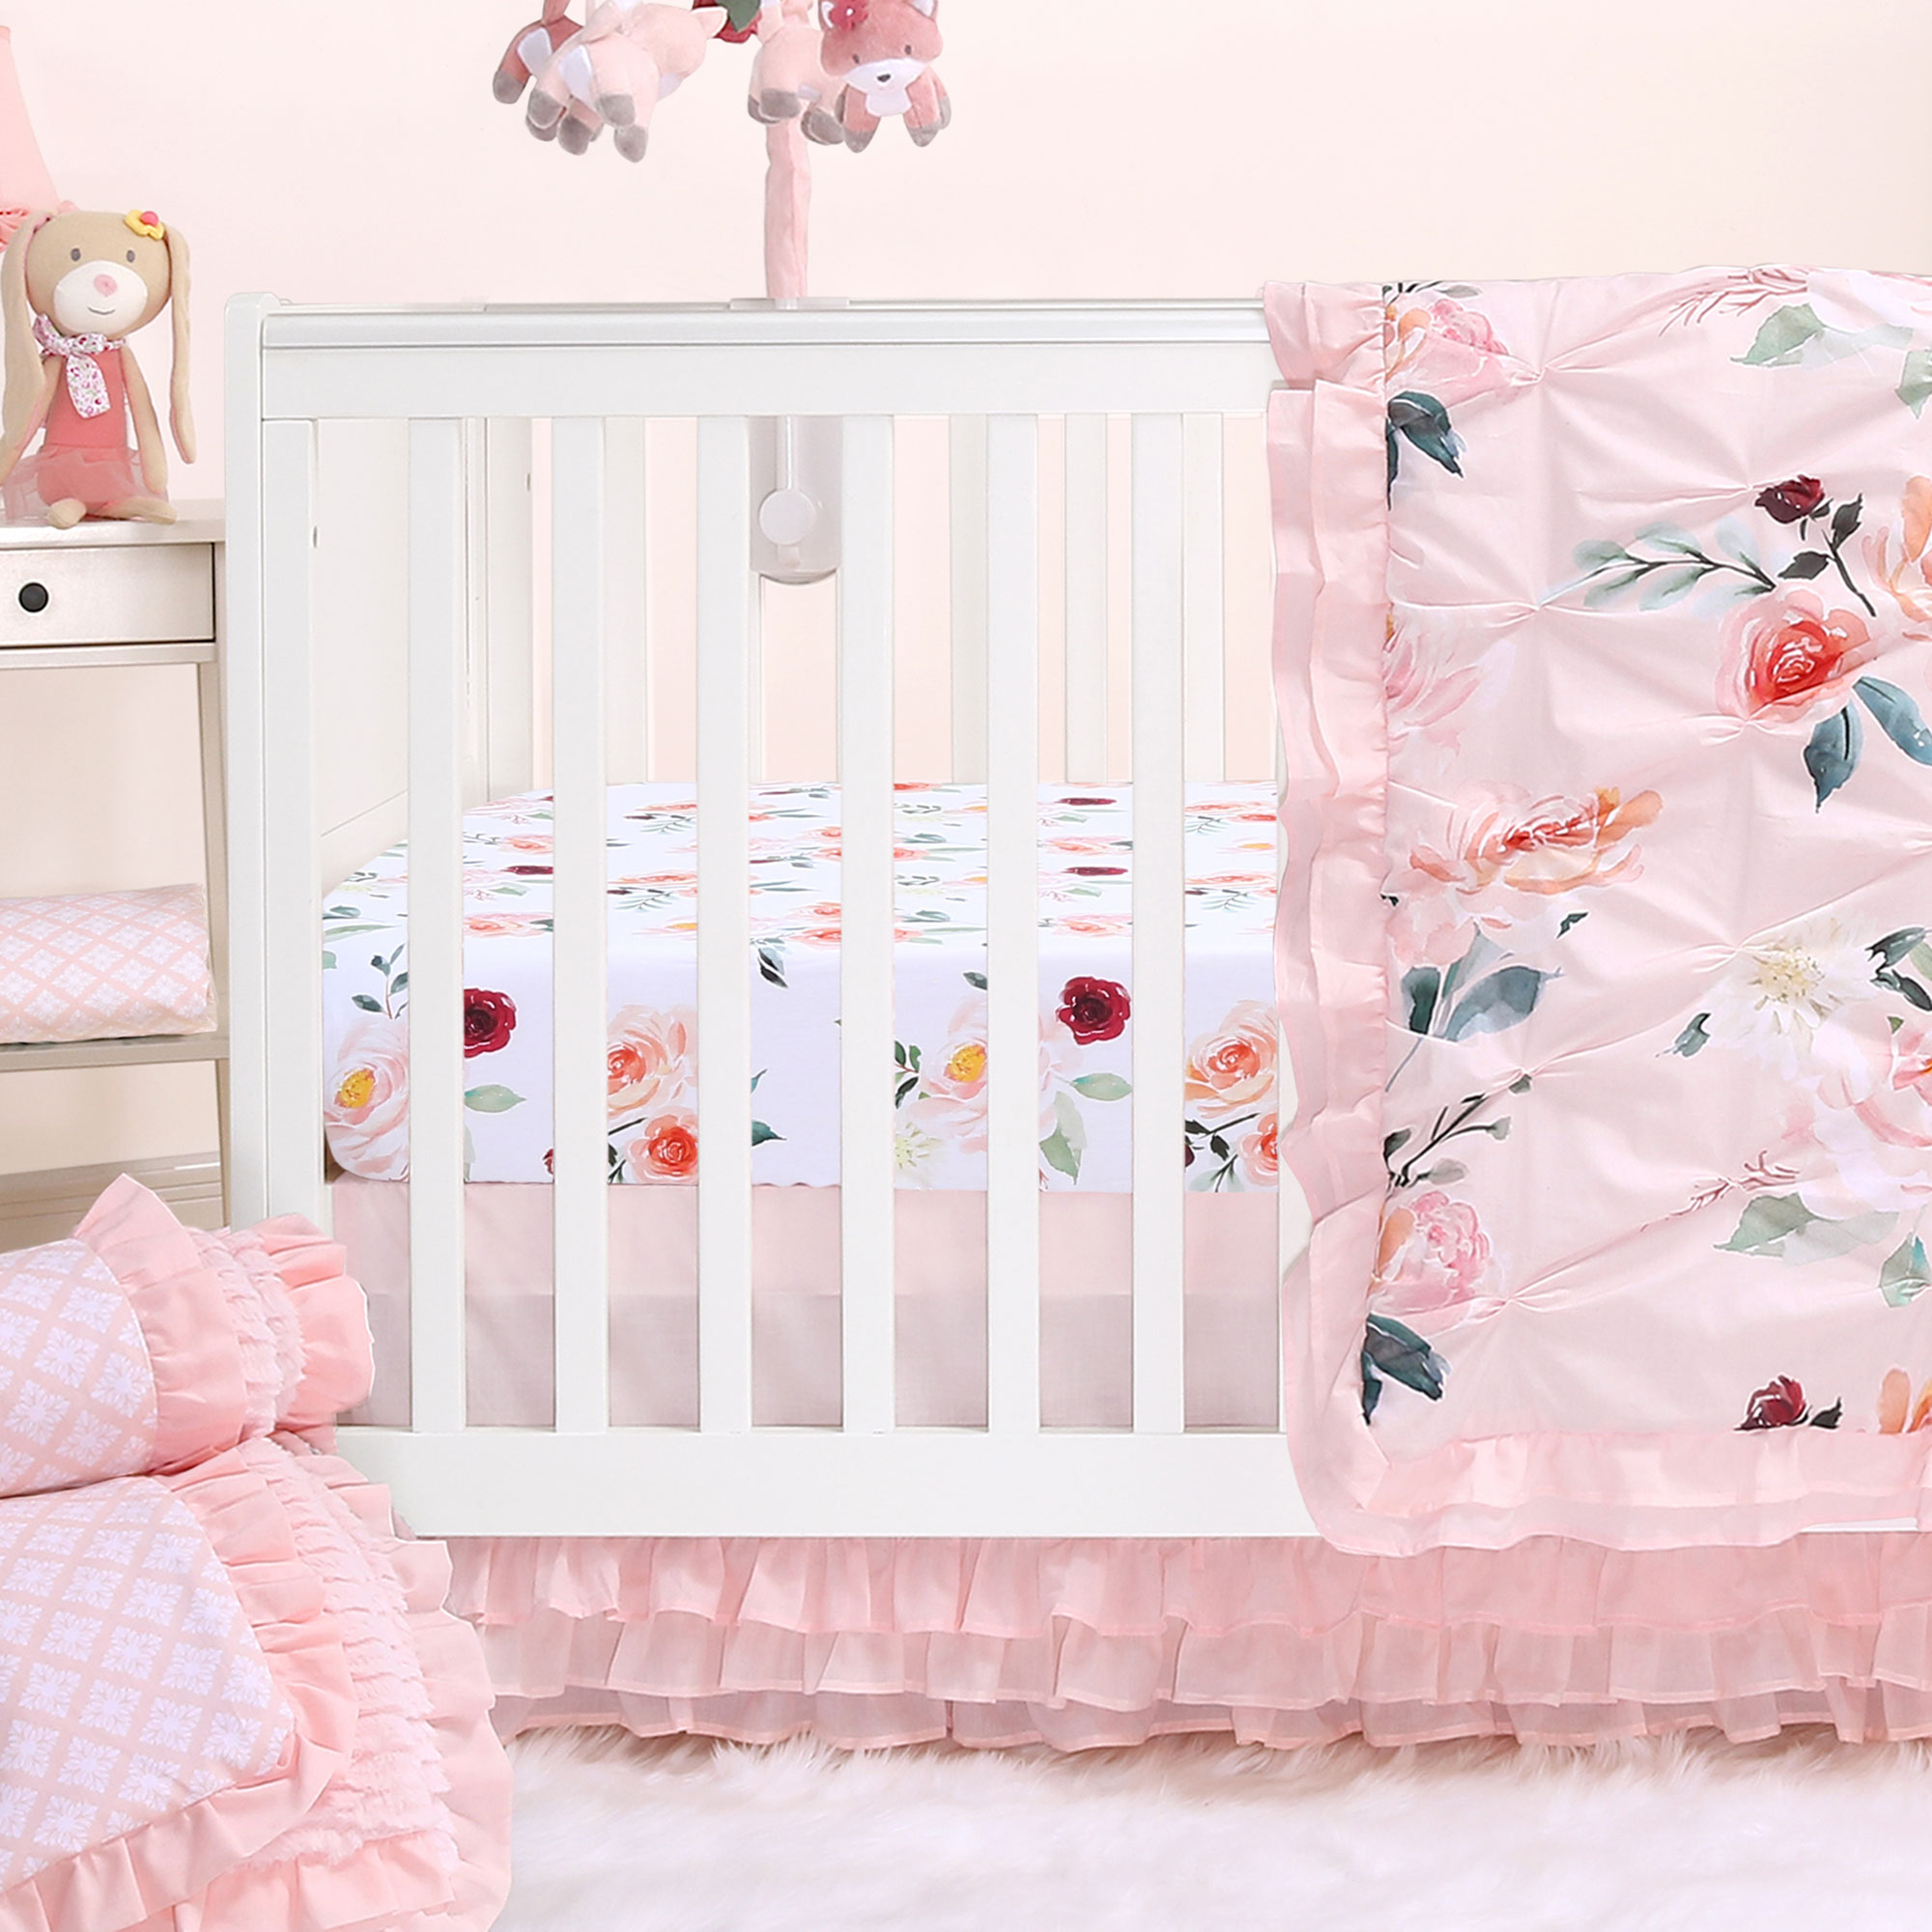 Rose Watercolor Floral Blush Pink 4-Piece Baby Girl Crib Bedding Set by The Peanut Shell